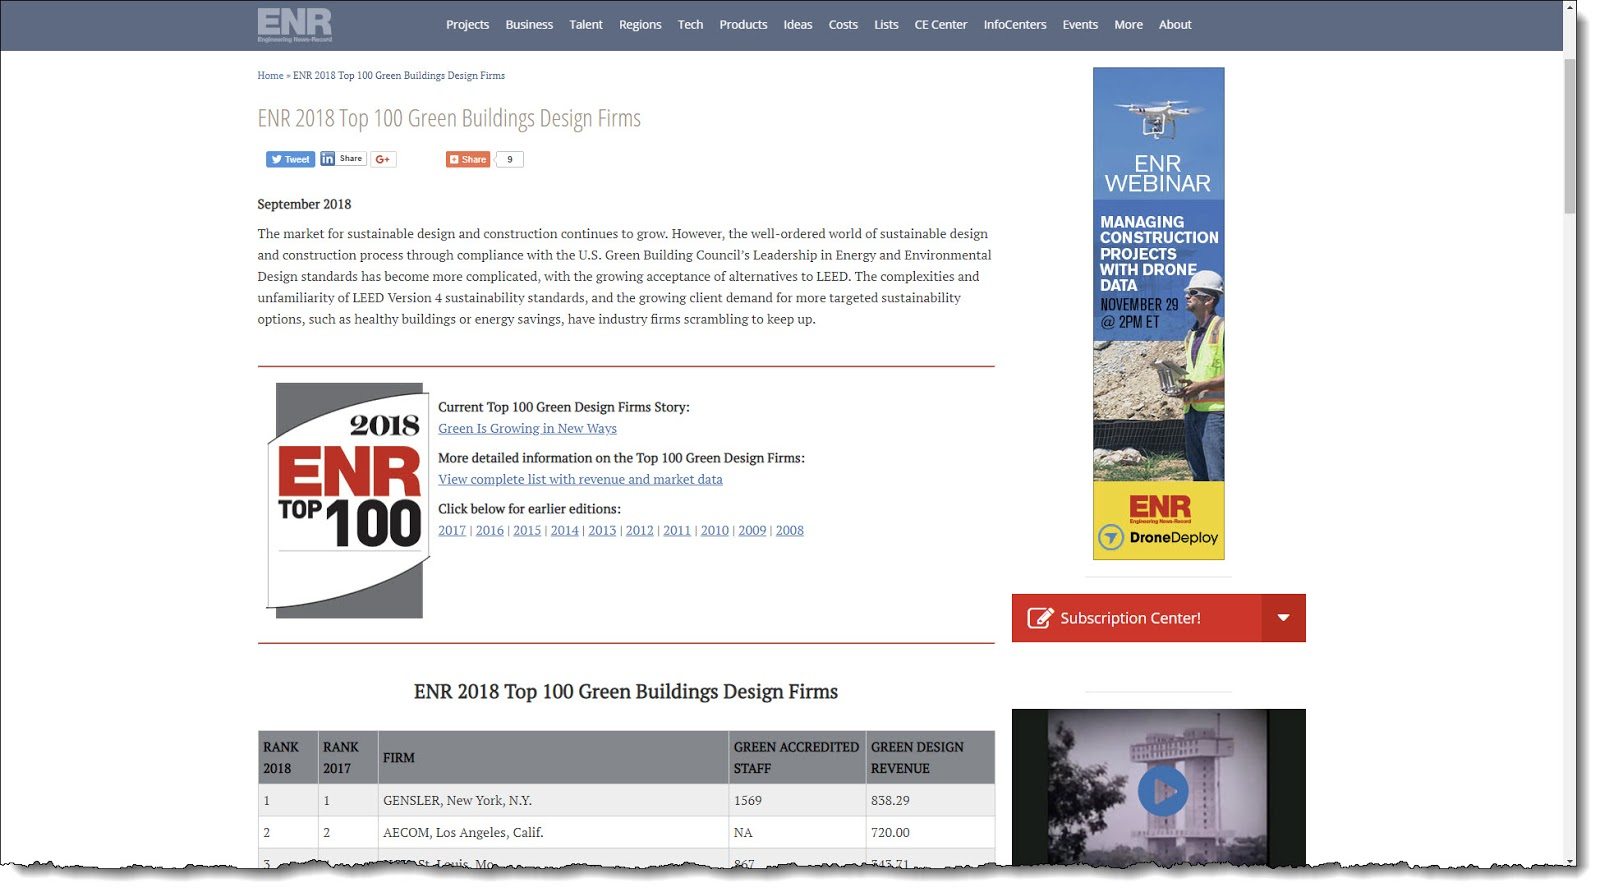 Bim Chapters Lhb Makes Enr Top 100 Green Buildings Design Firms List